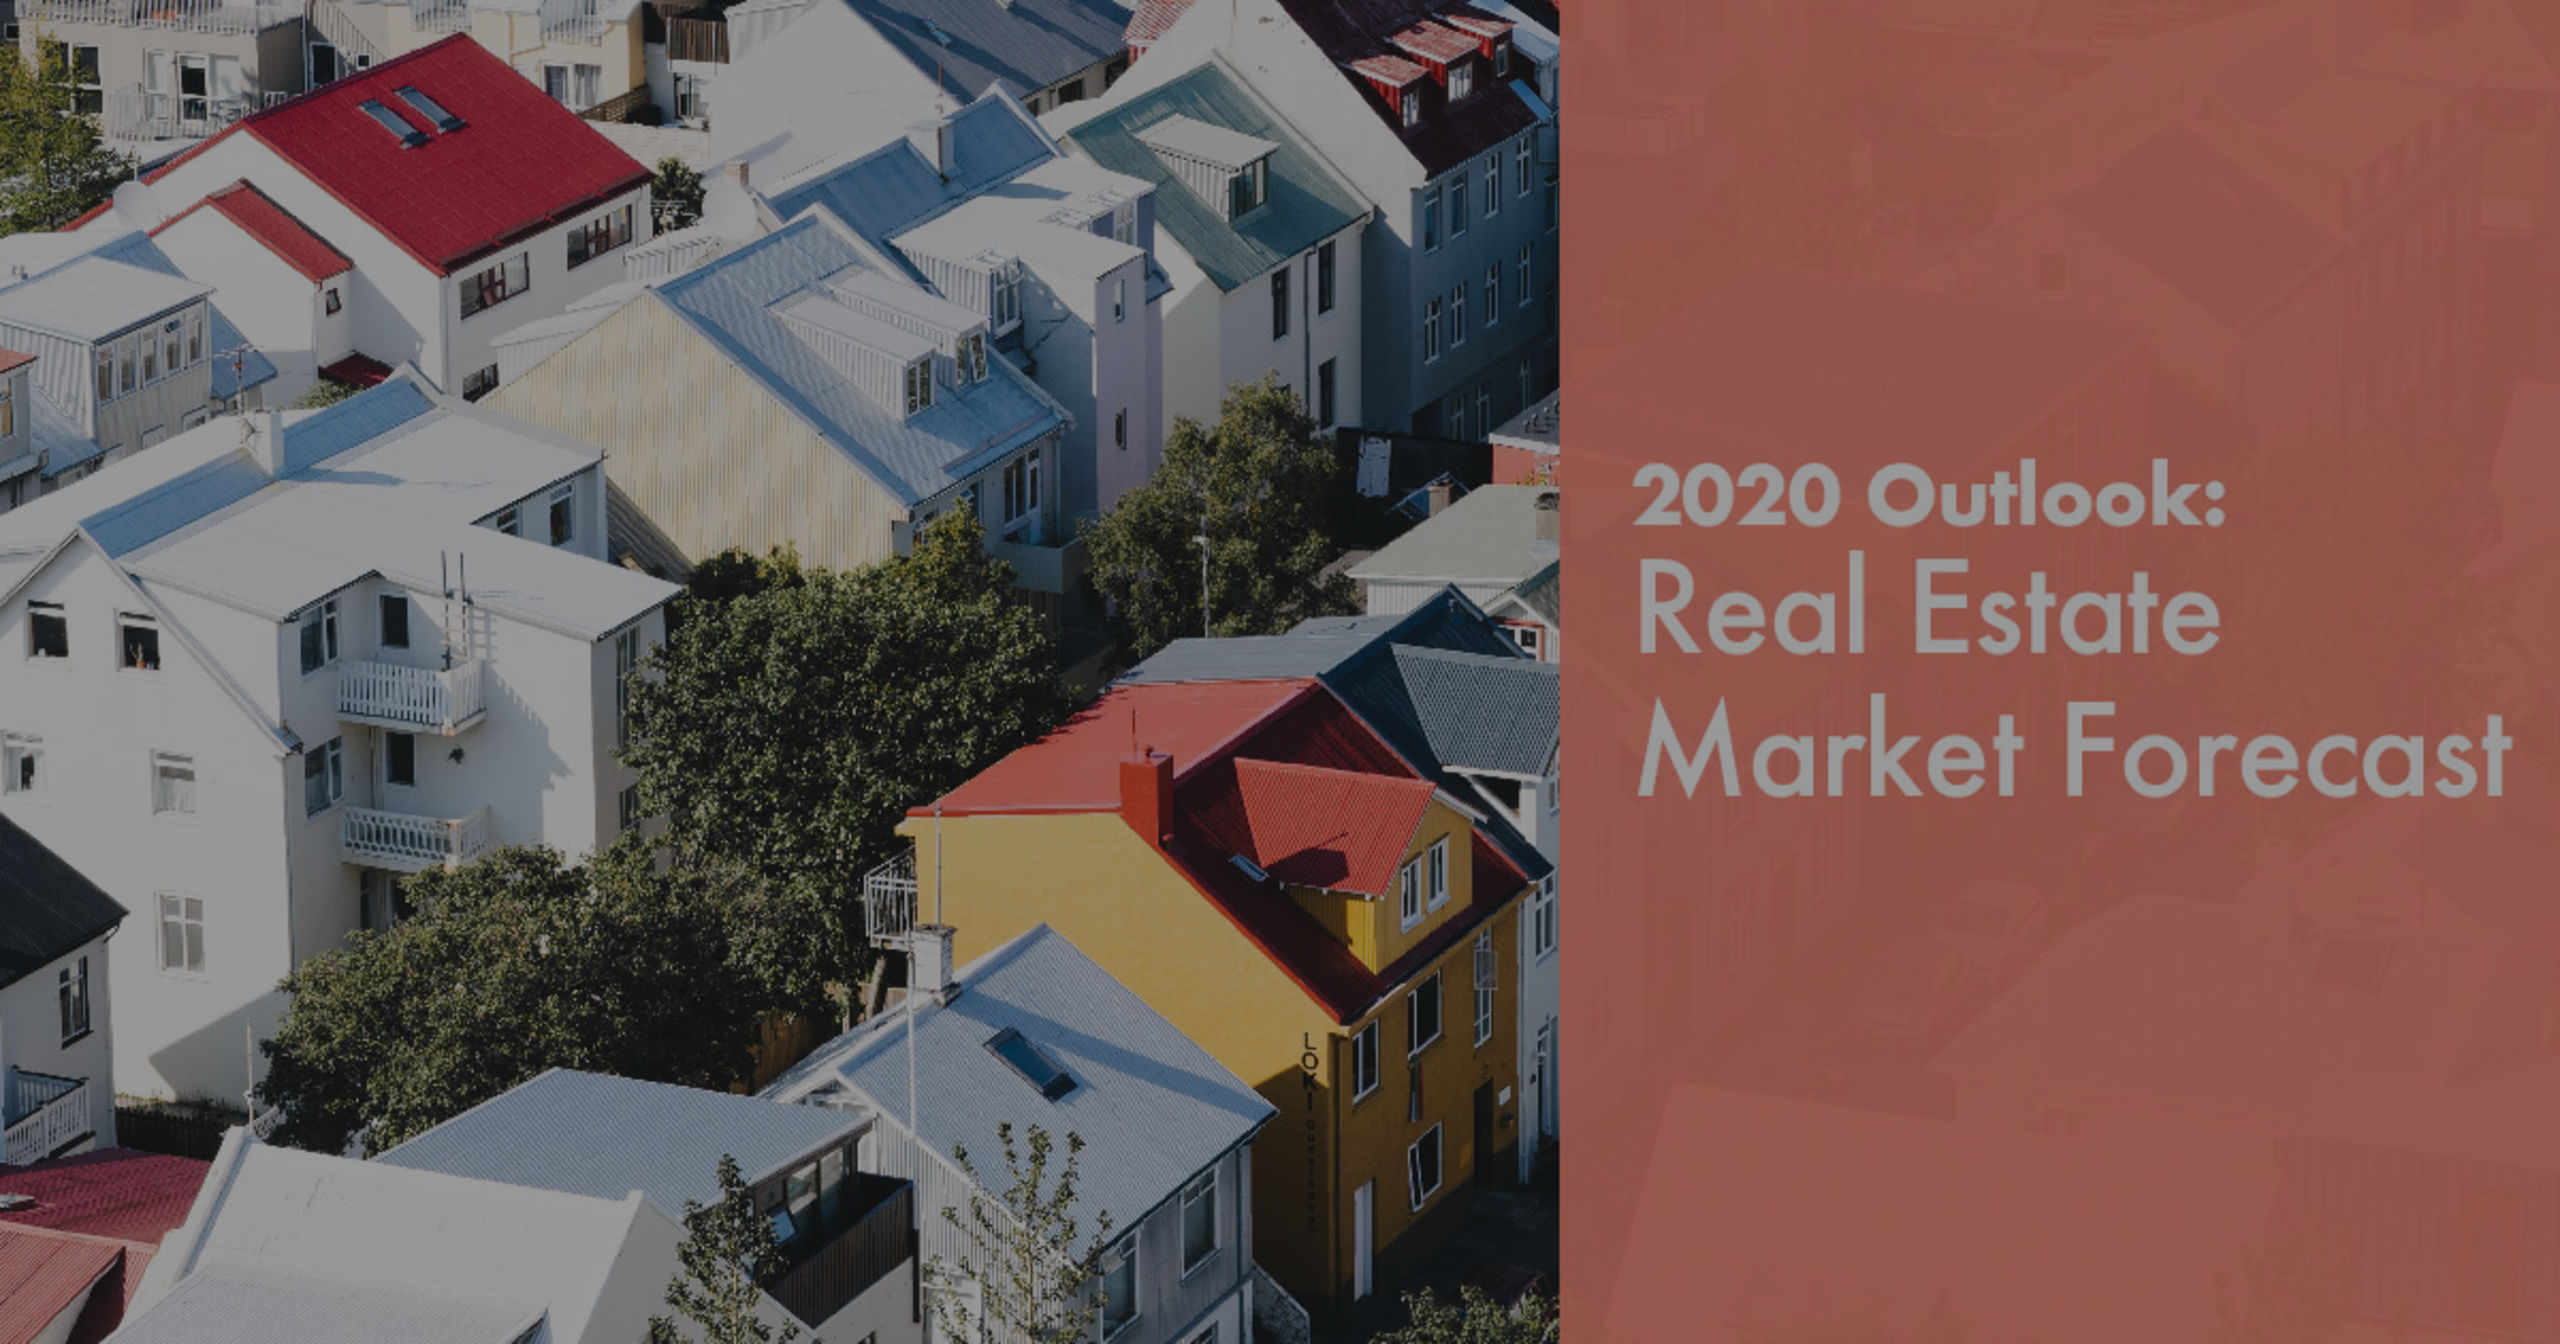 2020 Outlook: Real Estate Market Forecast By Willhite Realtors